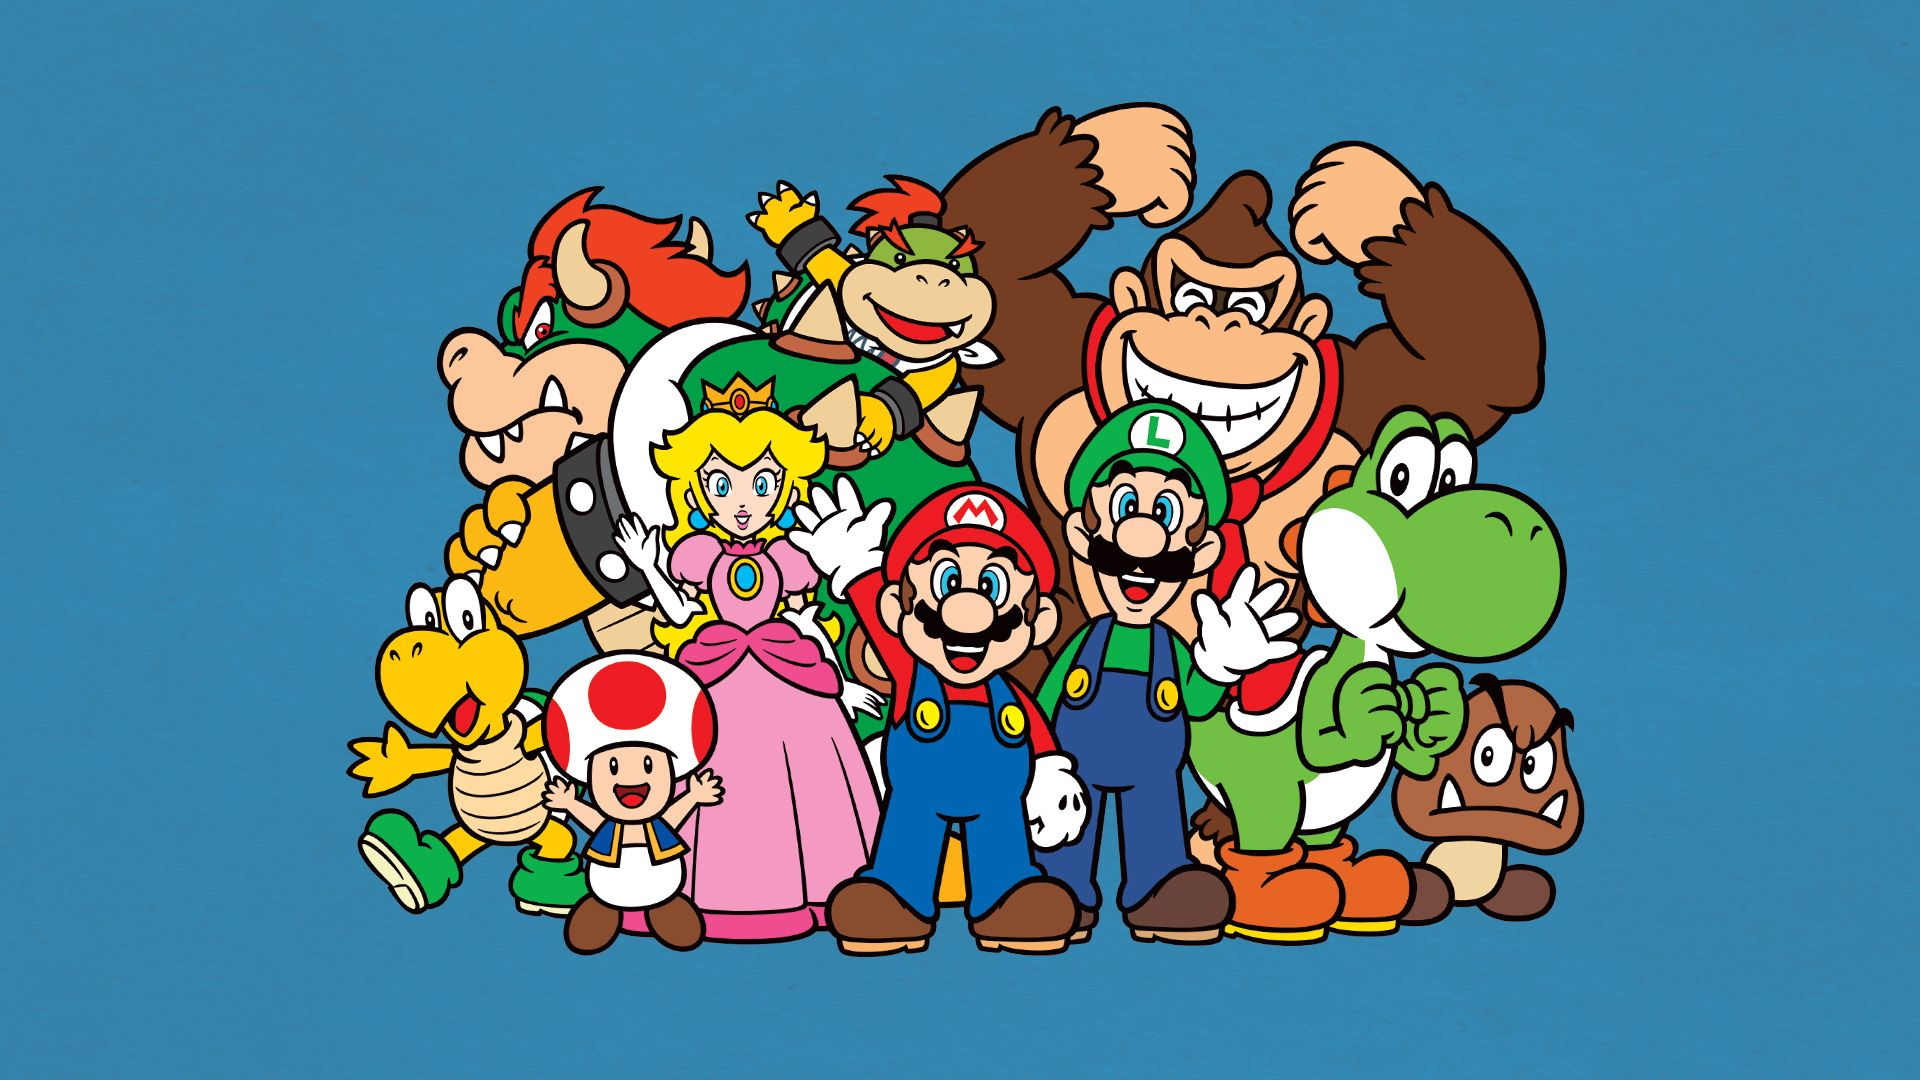 undefined Nintendo Backgrounds (40 Wallpapers) Adorable